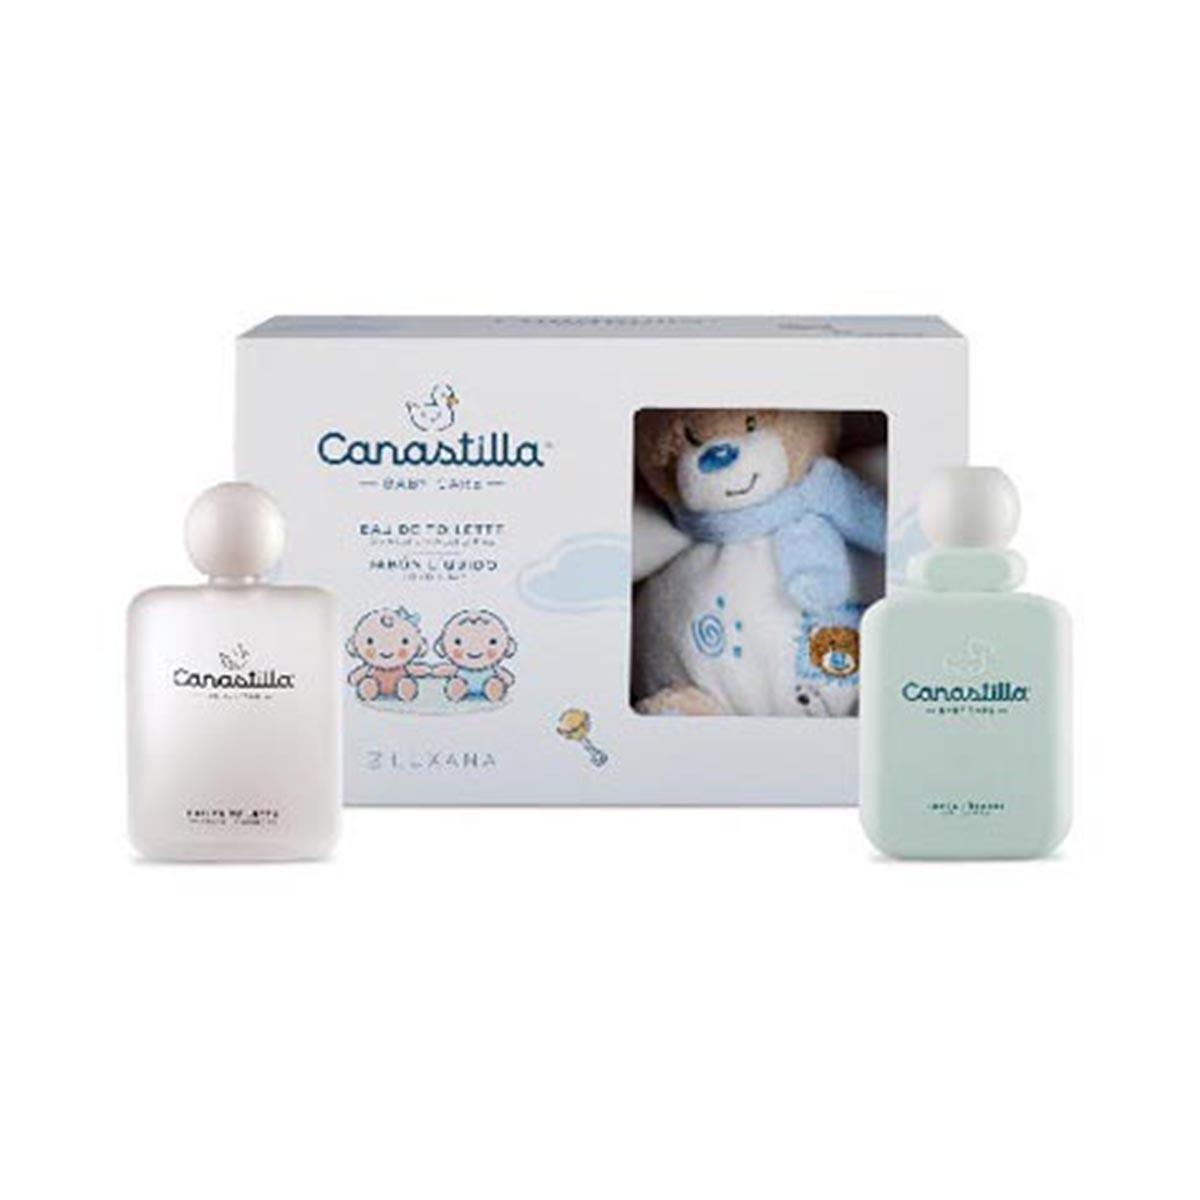 Consumo fragrances Luxana Canastilla Baby Eau De Toilette 100ml Gel 250ml